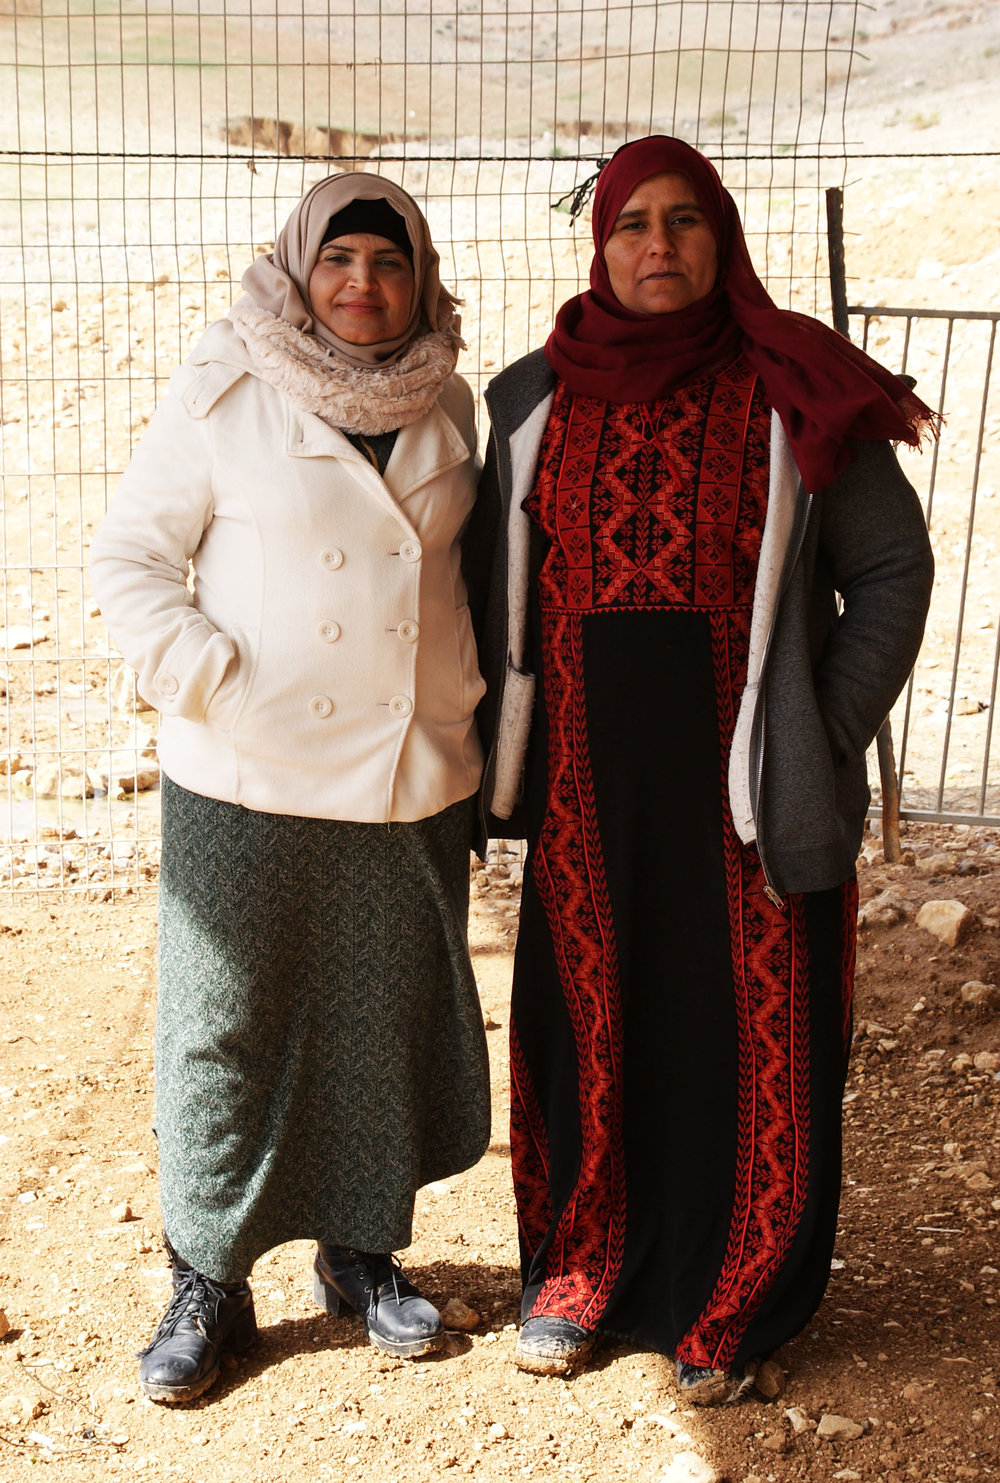 Bedouin Women -